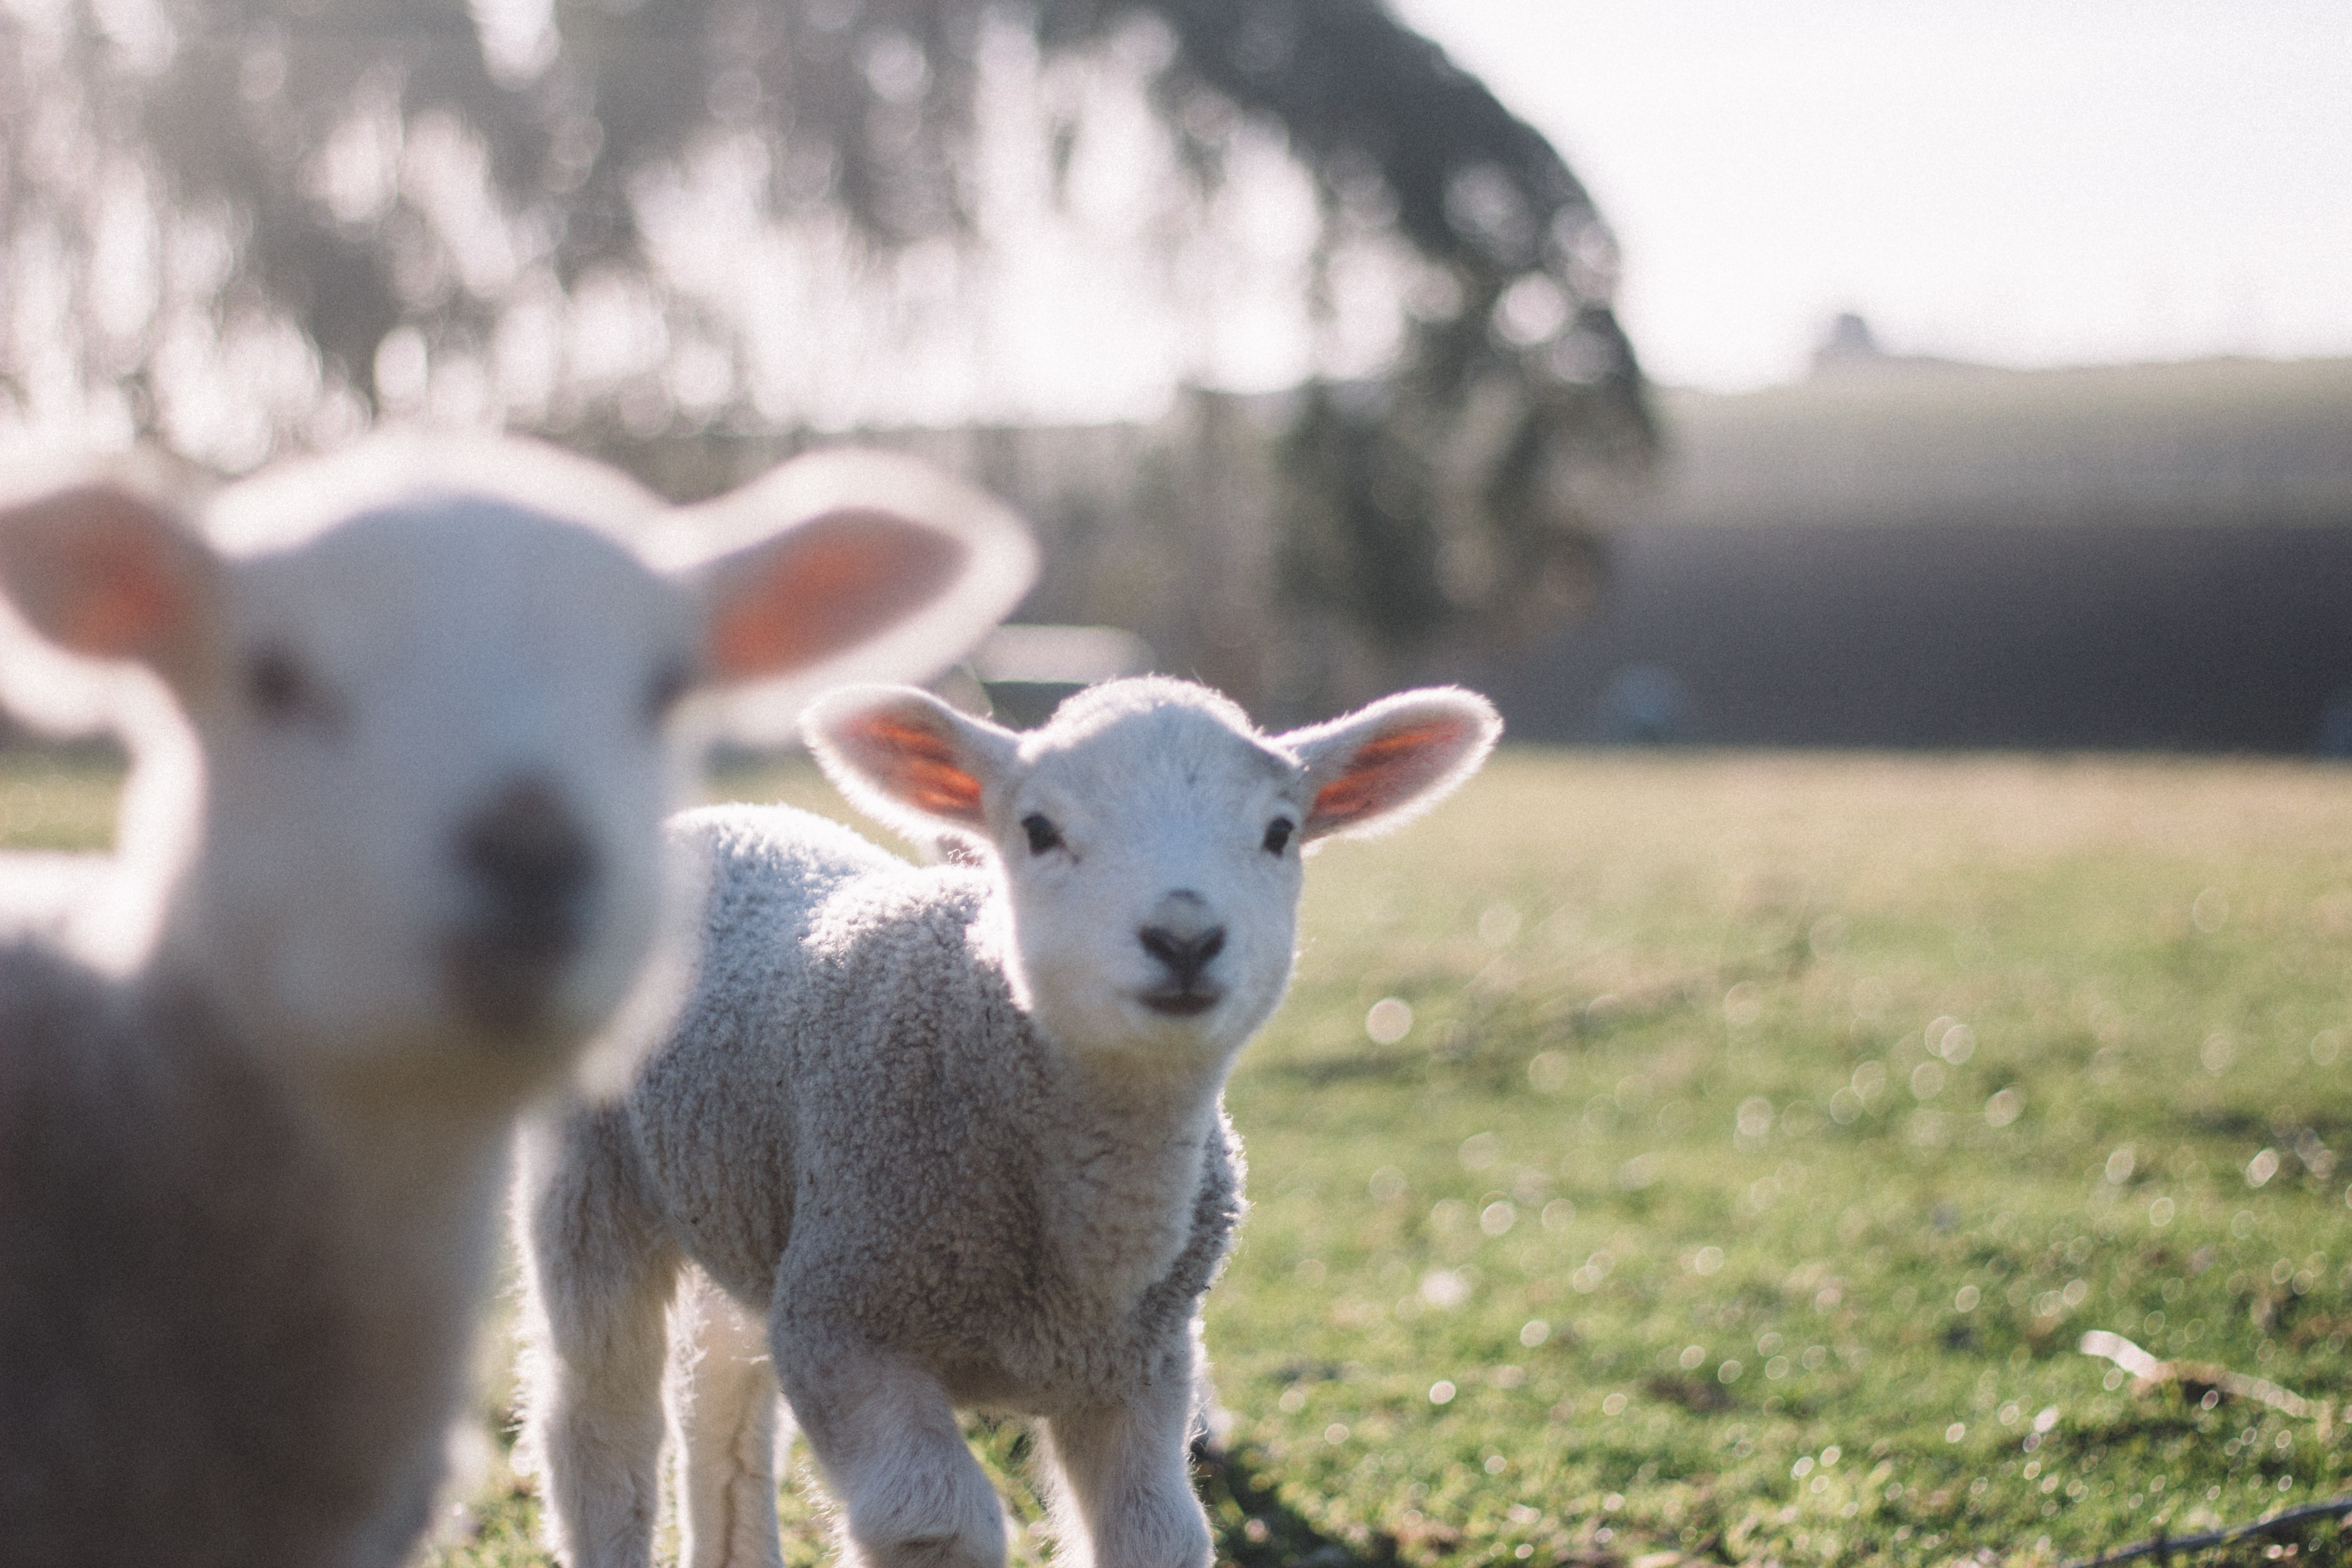 Two baby lambs with trimmed coat looking at the camera while grazing in a green pasture on a sunny day